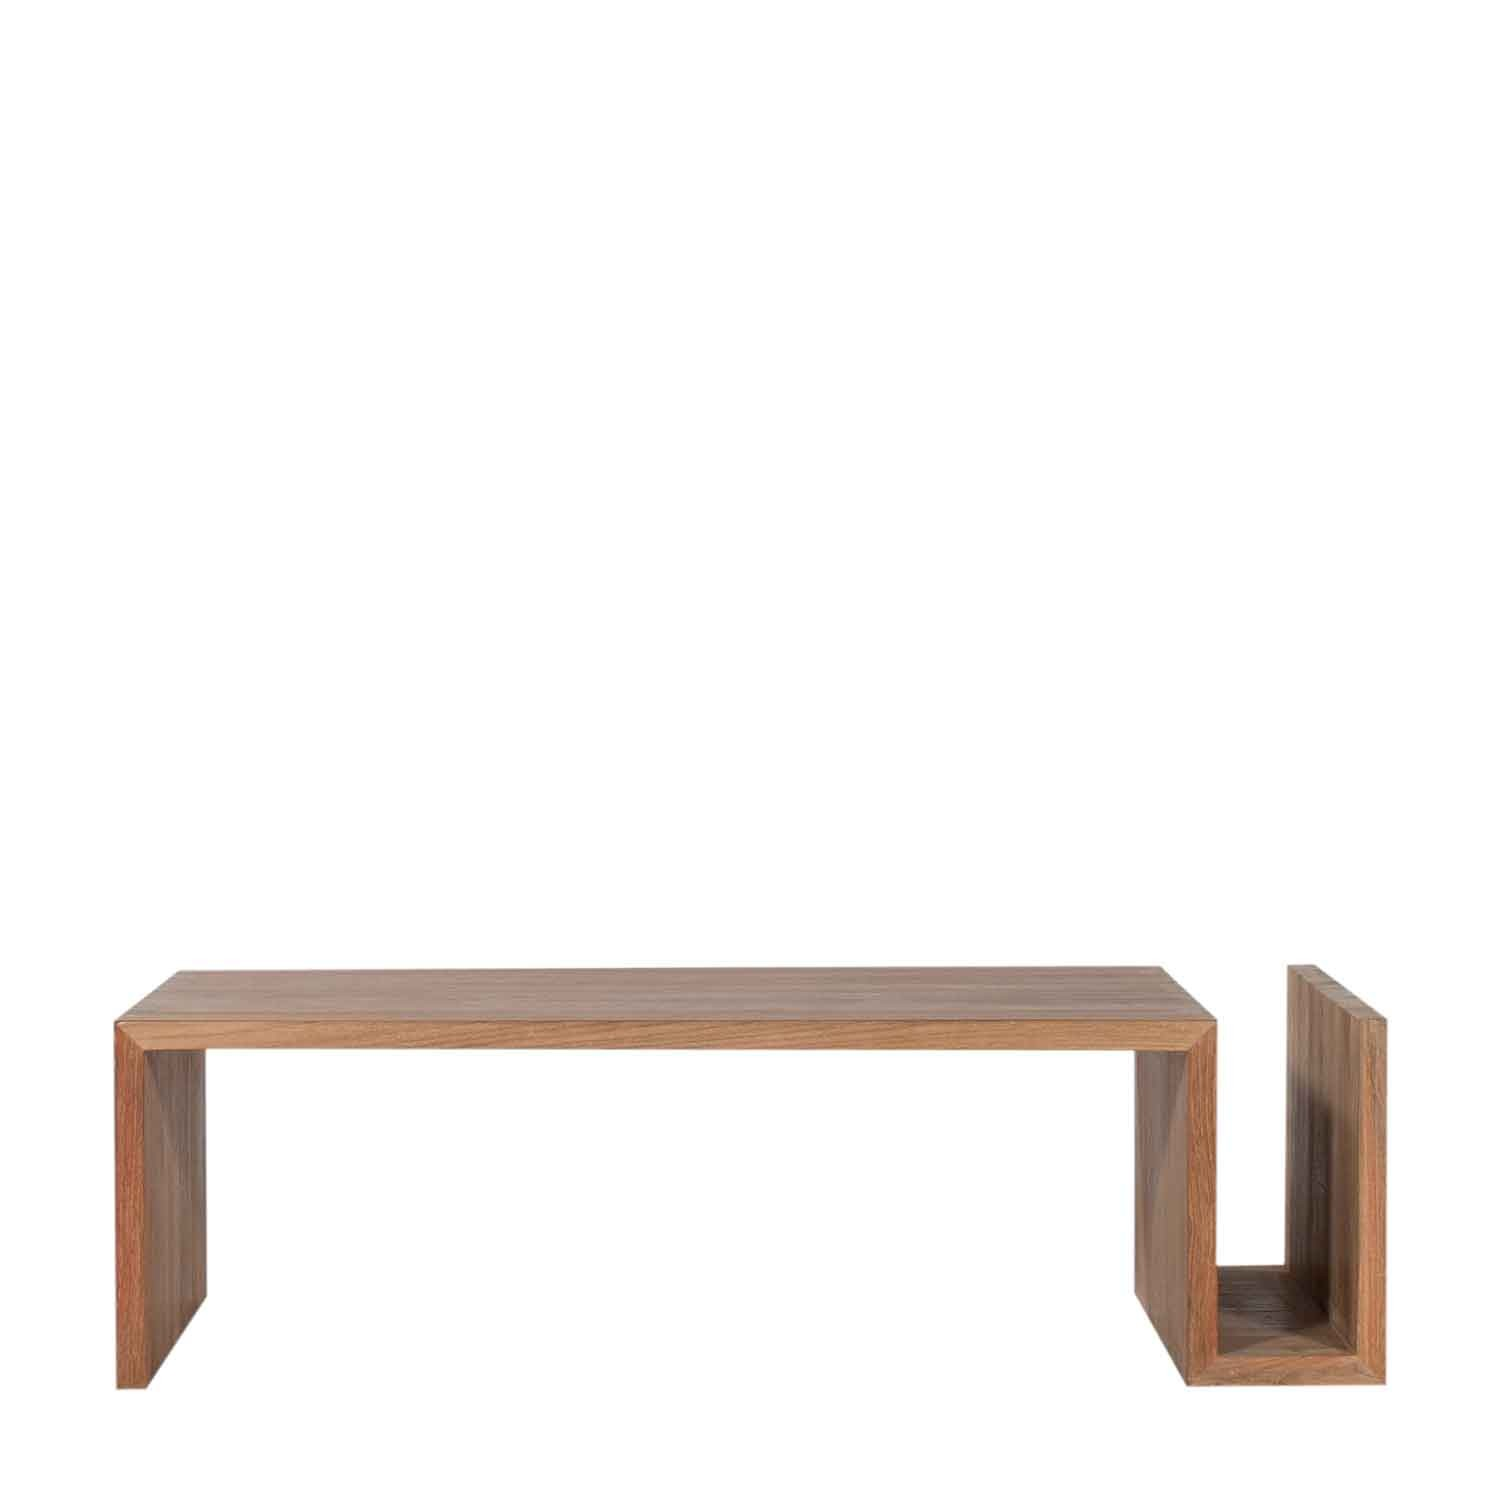 Teak Oil Coffee Table: Teak Coffee Table Naomi From Ethnicraft